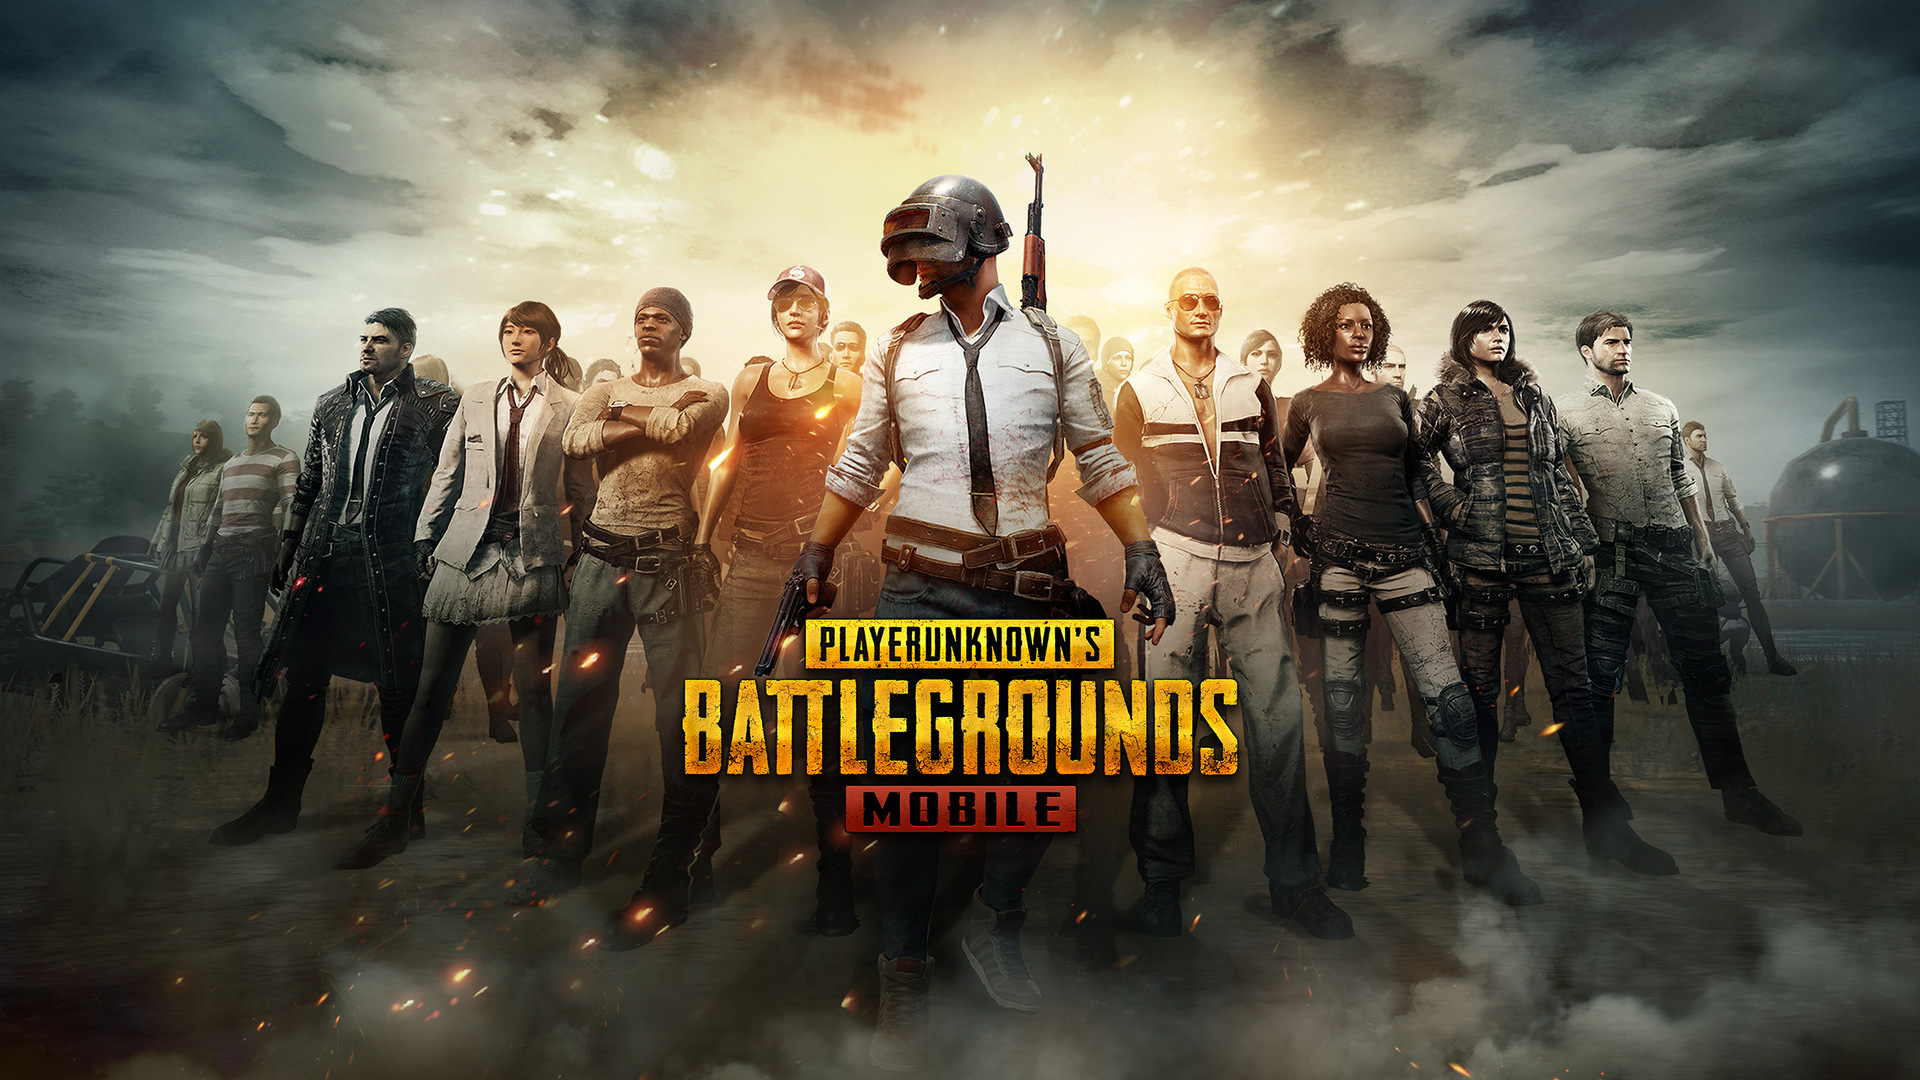 Pubg Hd Pics For Mobile: 1920x1080 Pubg Mobile Laptop Full HD 1080P HD 4k